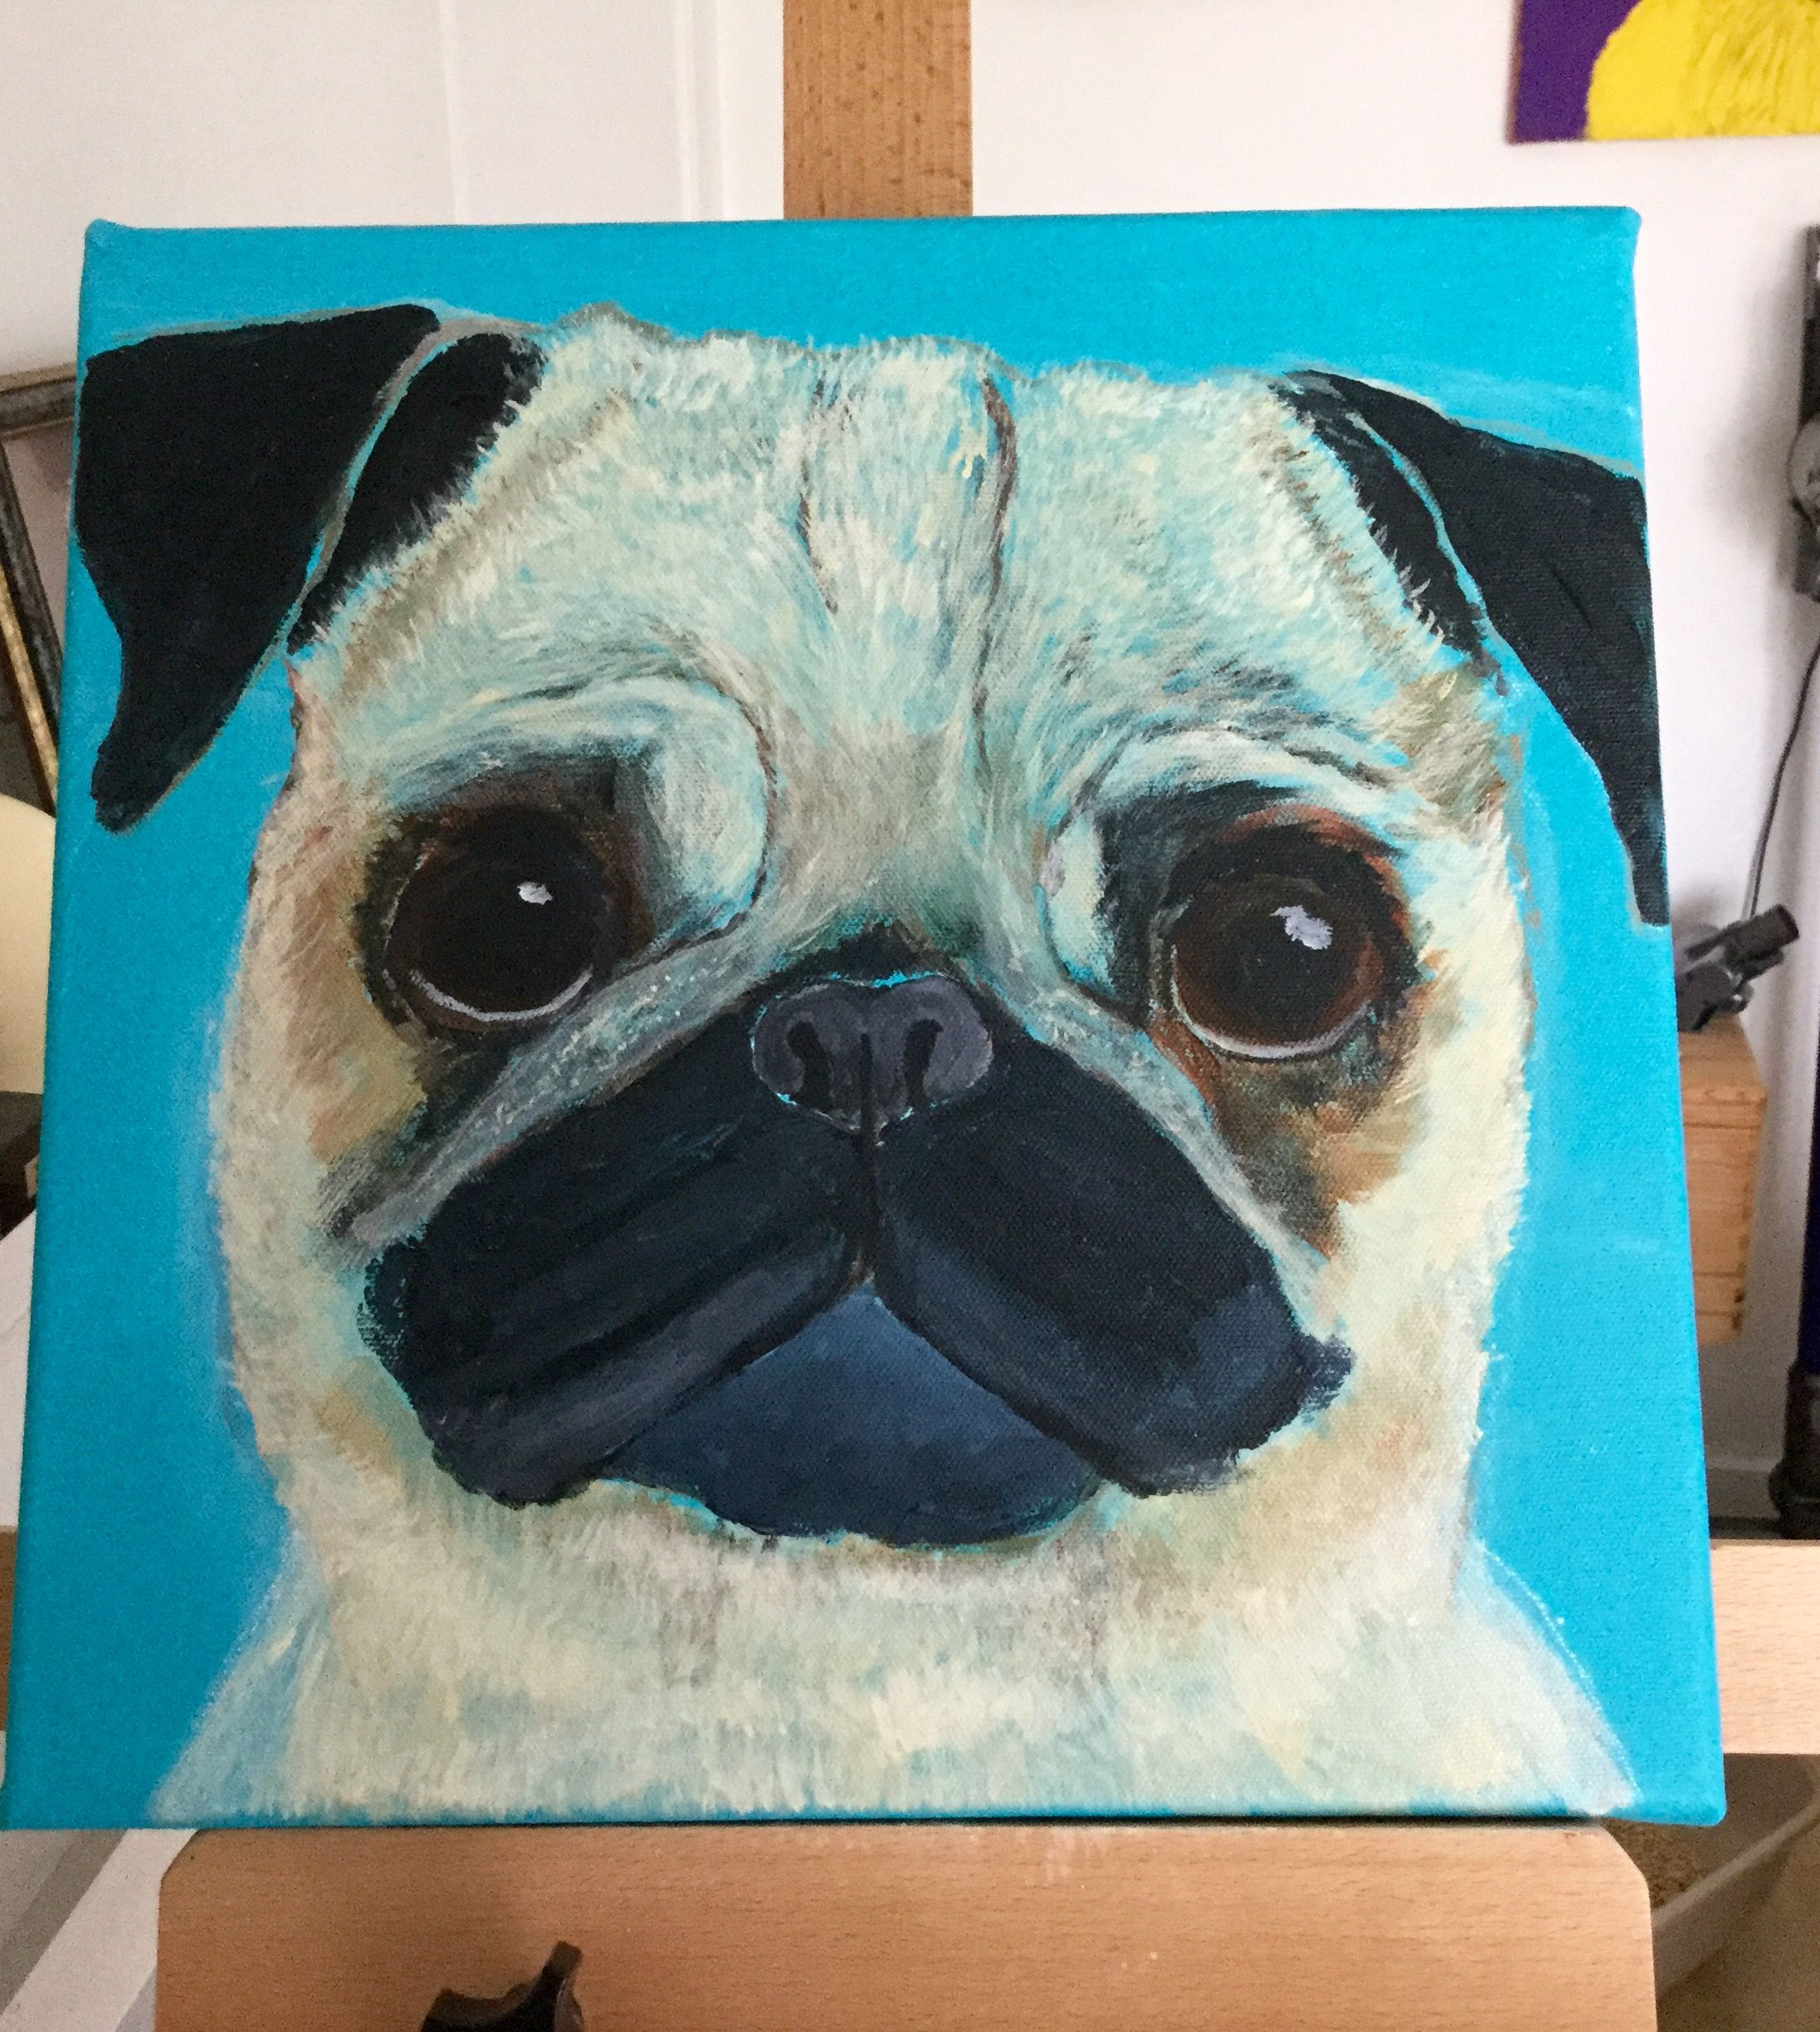 Acrylic On Canvas Pug By J Bruguera Hotmail Co Uk Happy To Take